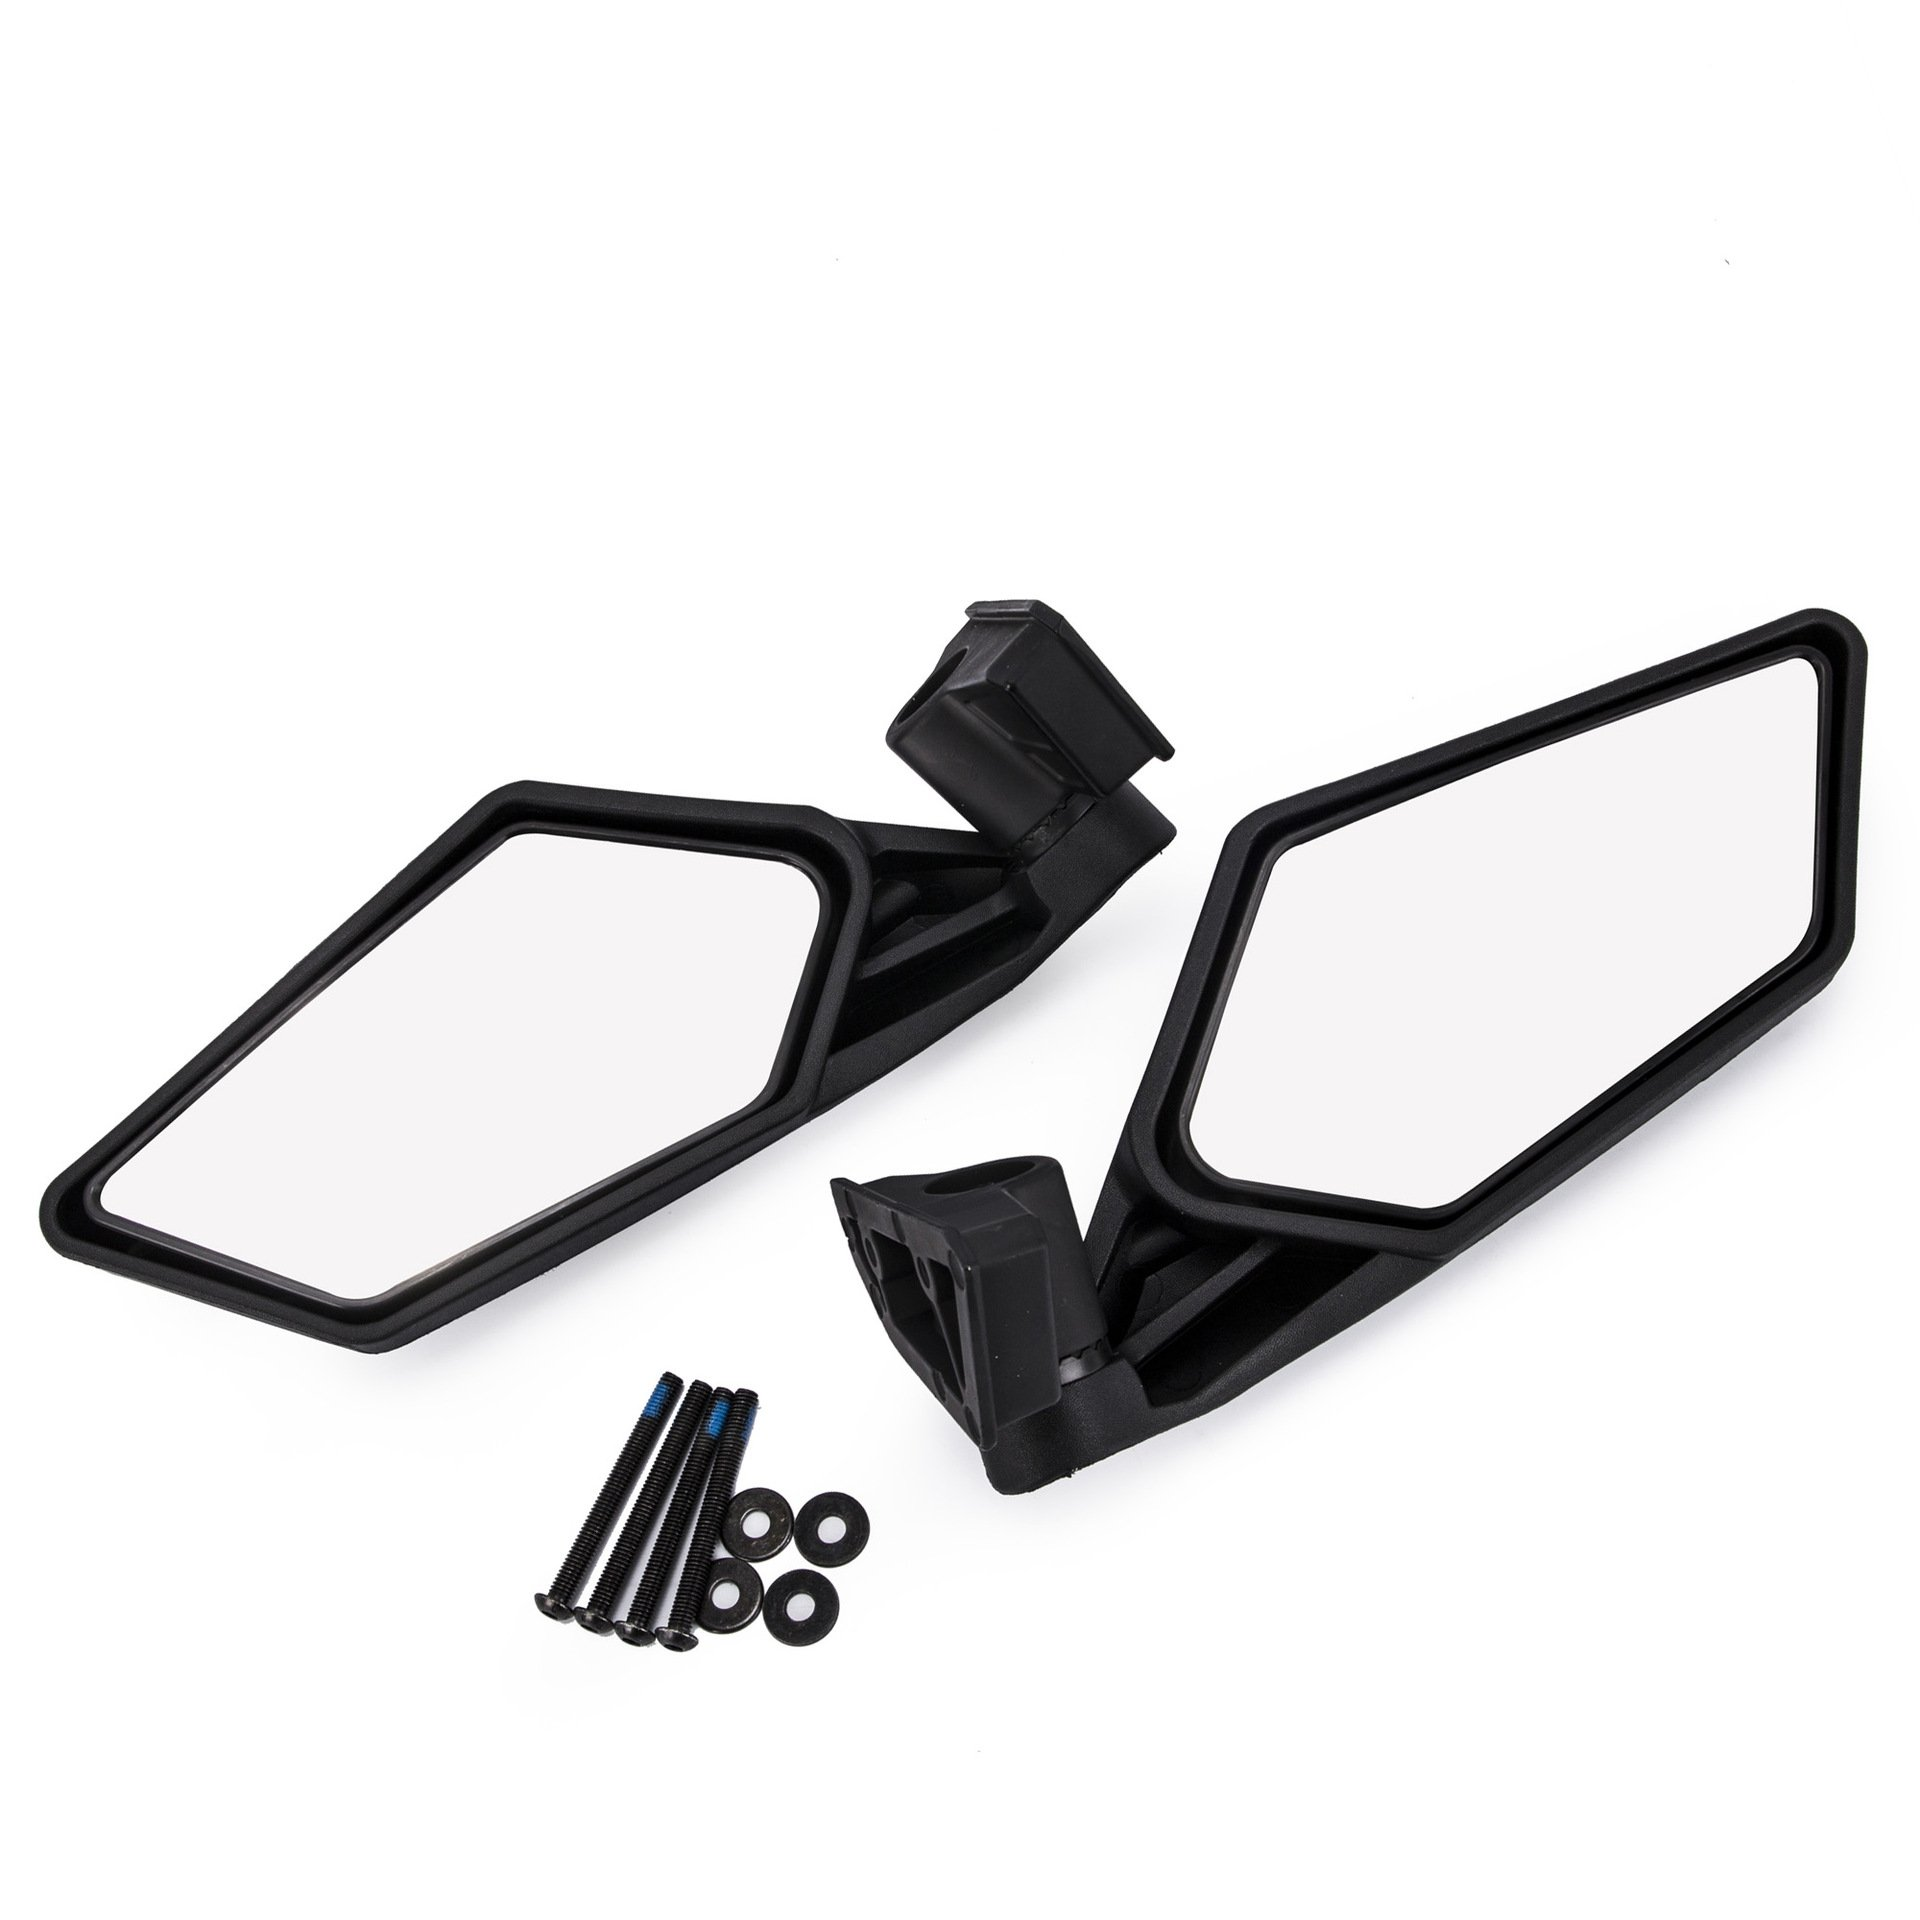 Ocamo 2 Pcs UTV Heavy Duty Rear View Mirror for UTV Polaris RZR Can Am Maverick X3 2017 2018